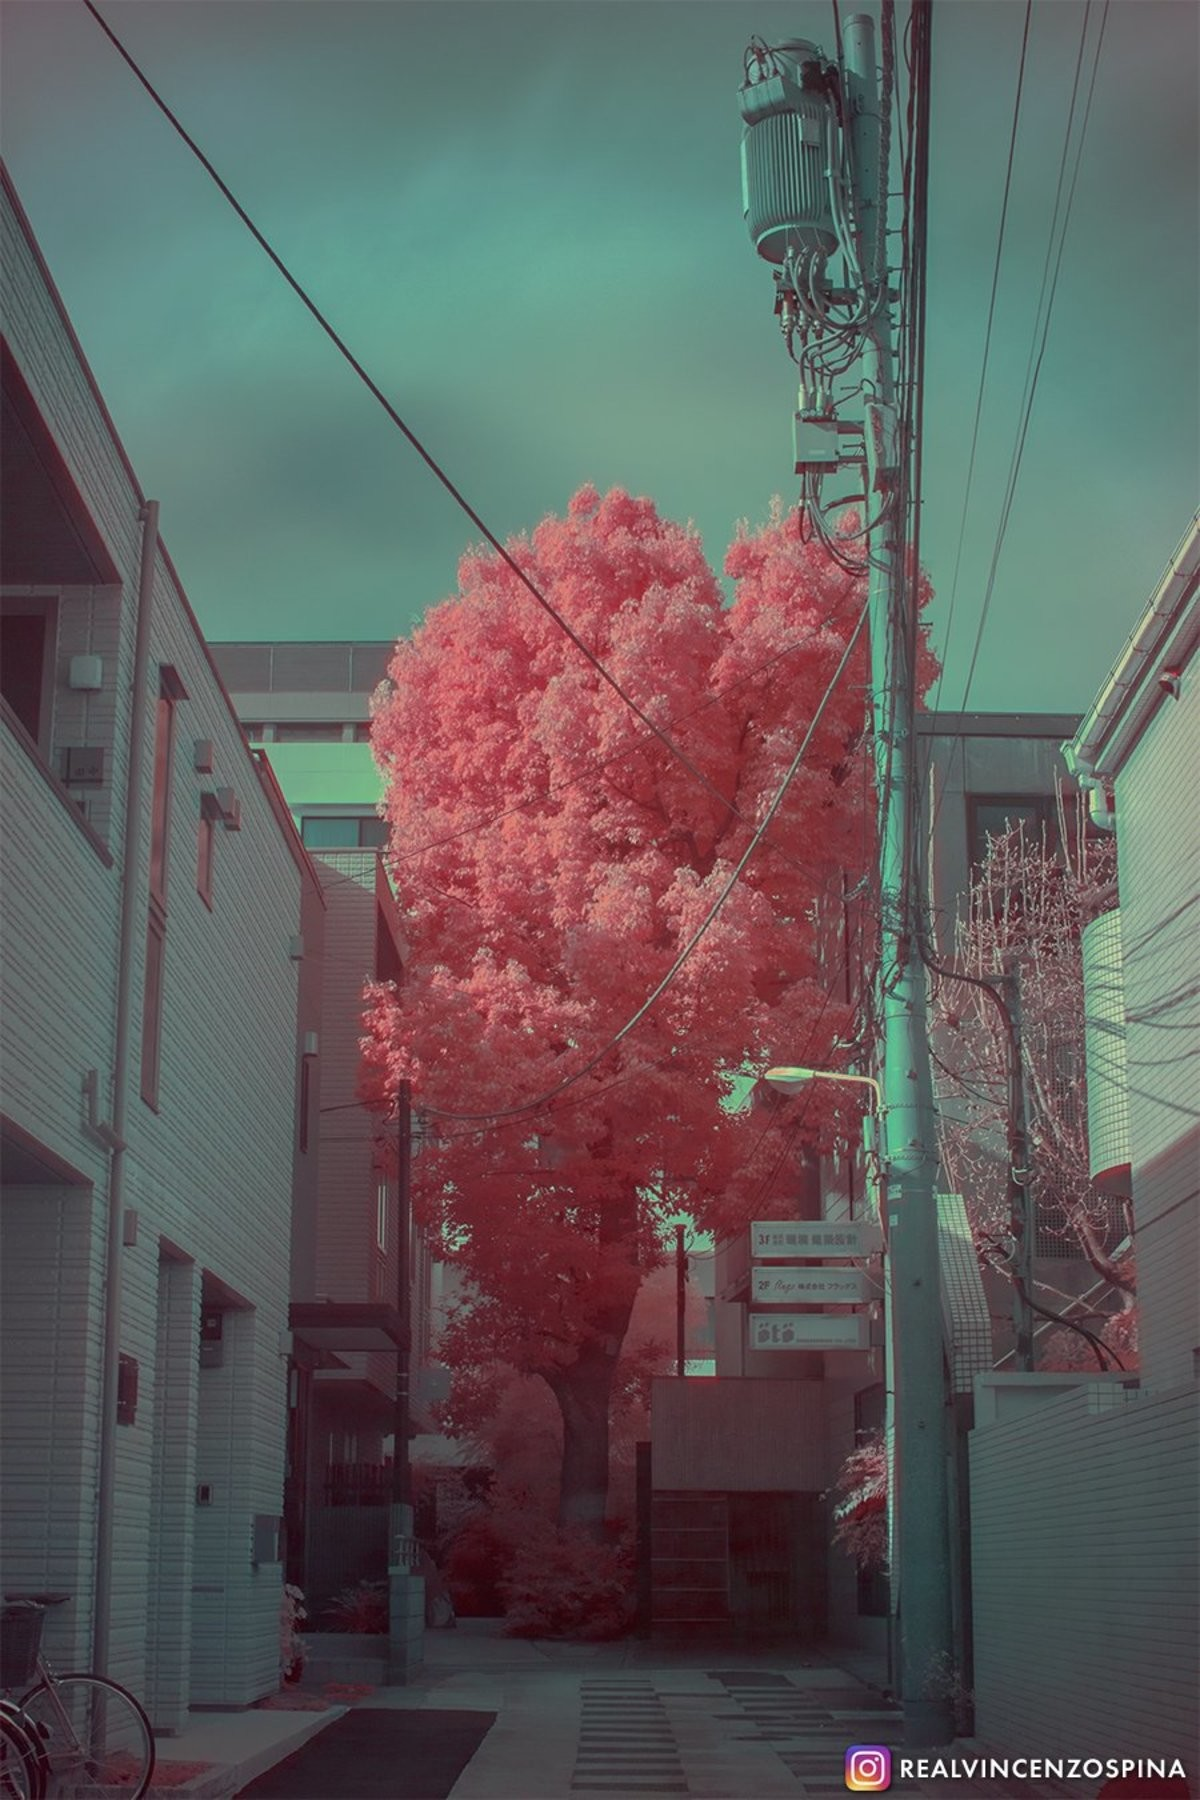 infrared photos. . ill. Excited Bee Noises